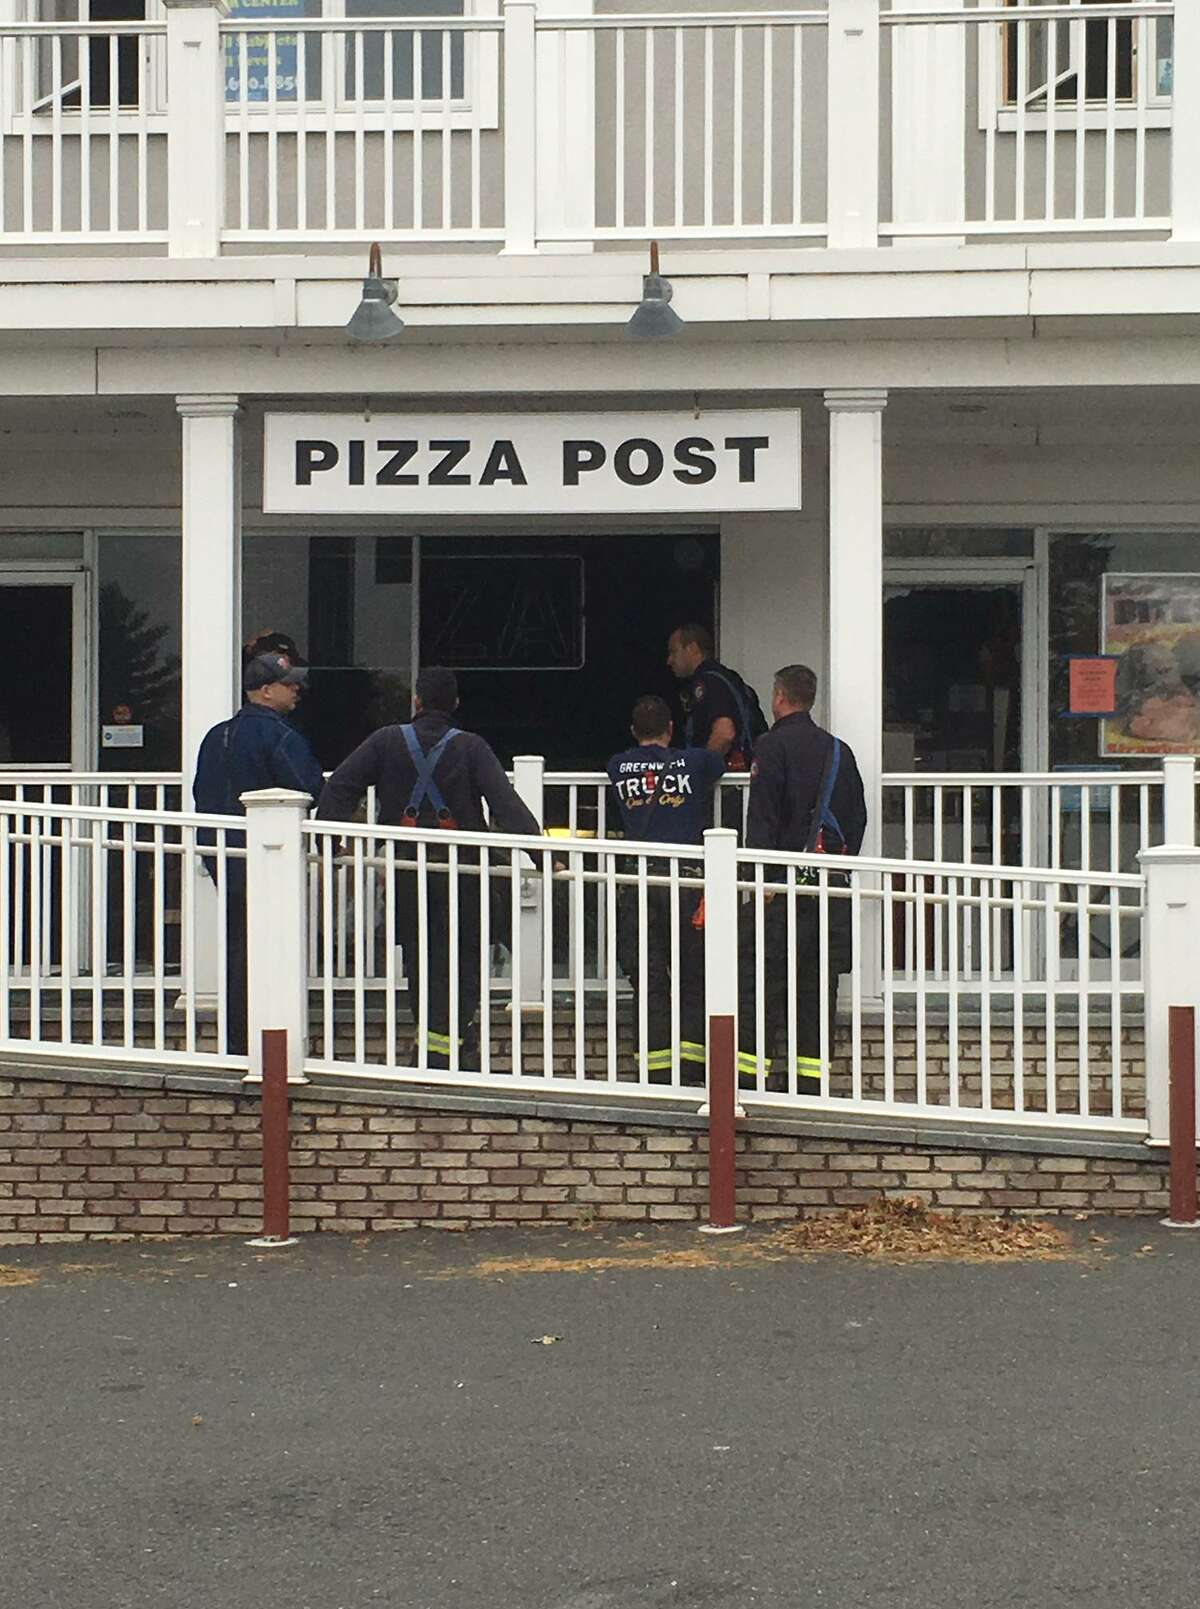 The building at 522 E. Putnam Ave. is home to the popular Pizza Post.